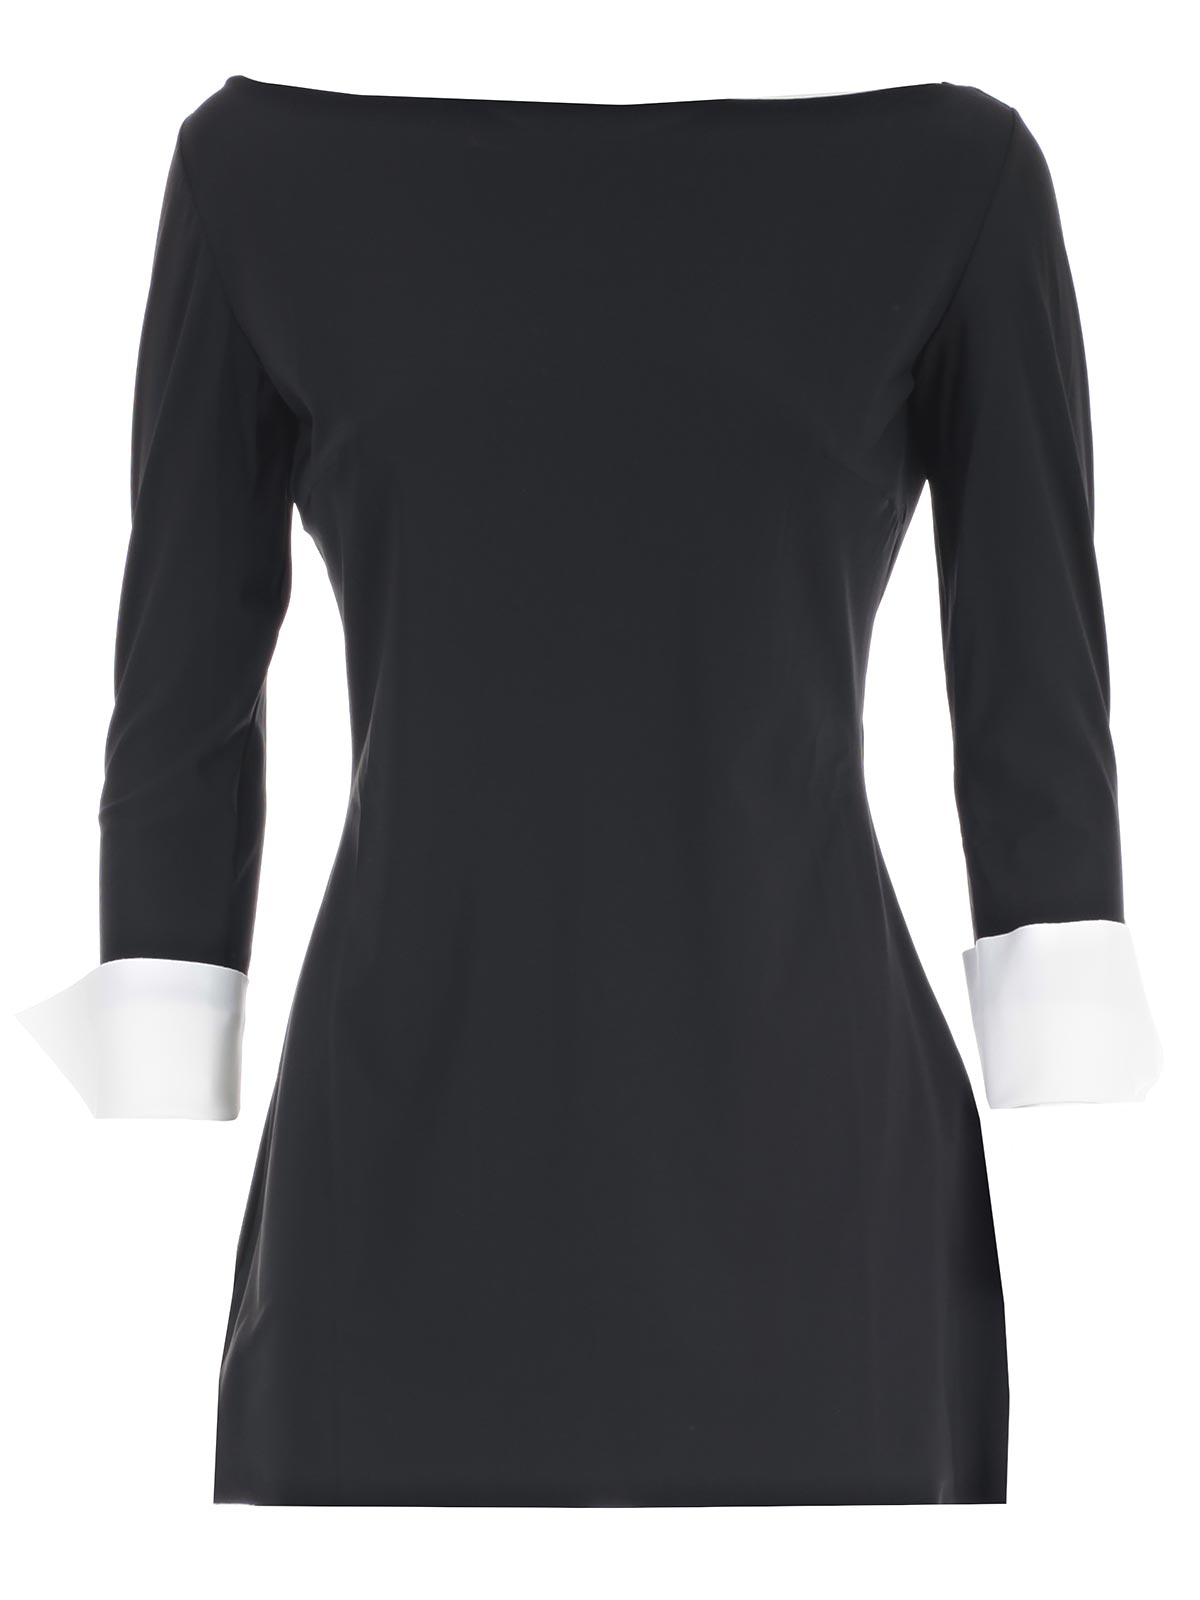 Picture of CHIARA BONI LA PETITE ROBE SHIRTS